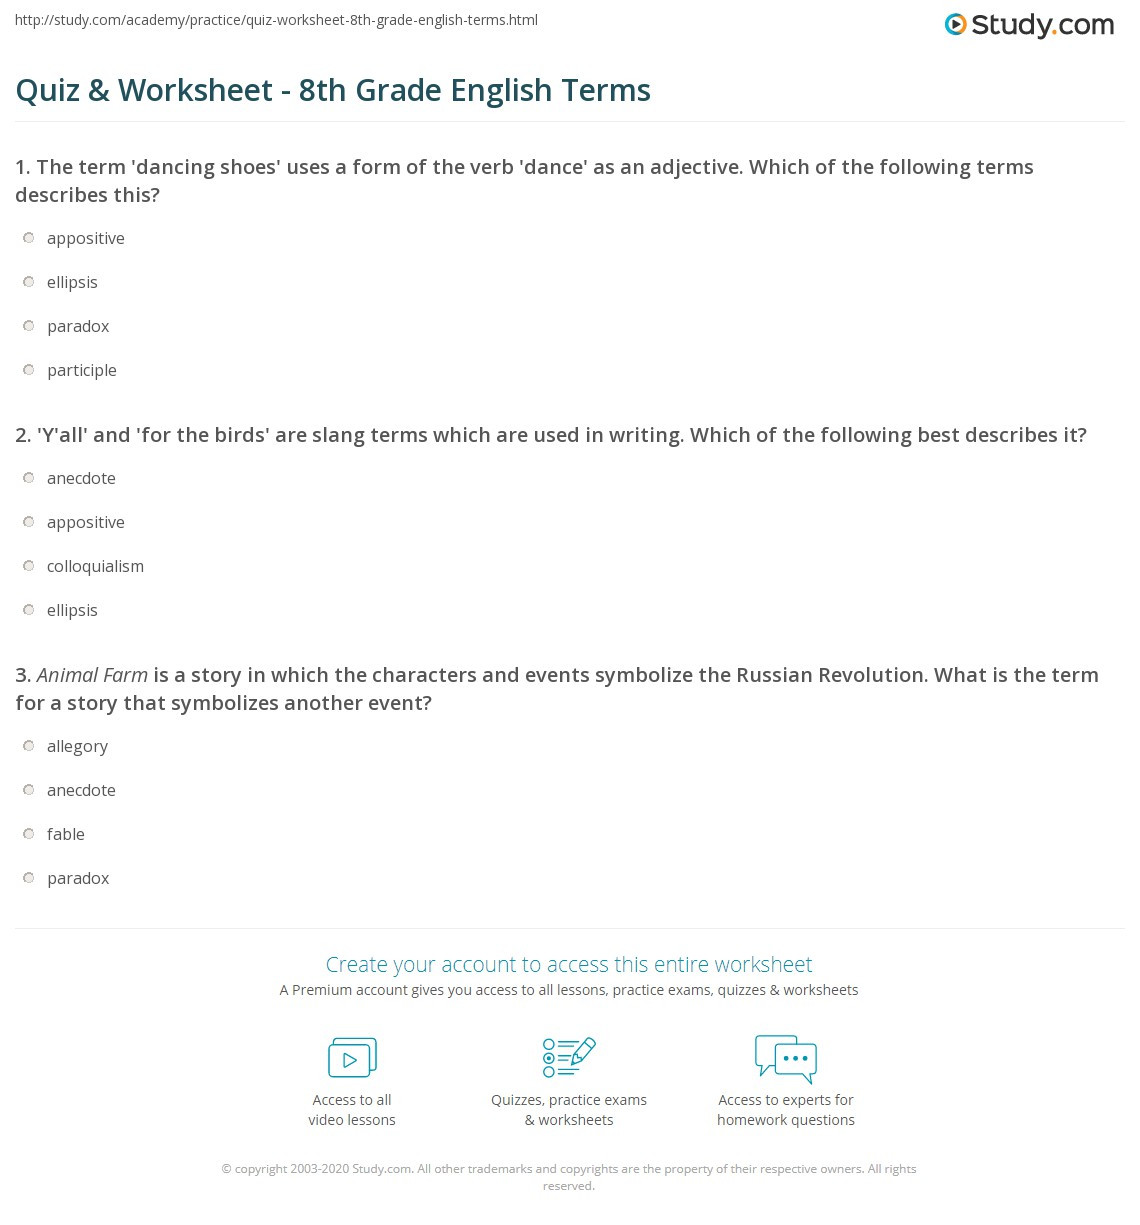 8th Grade English Worksheets Quiz Worksheet 8th Grade English Terms Study Worksheets Can